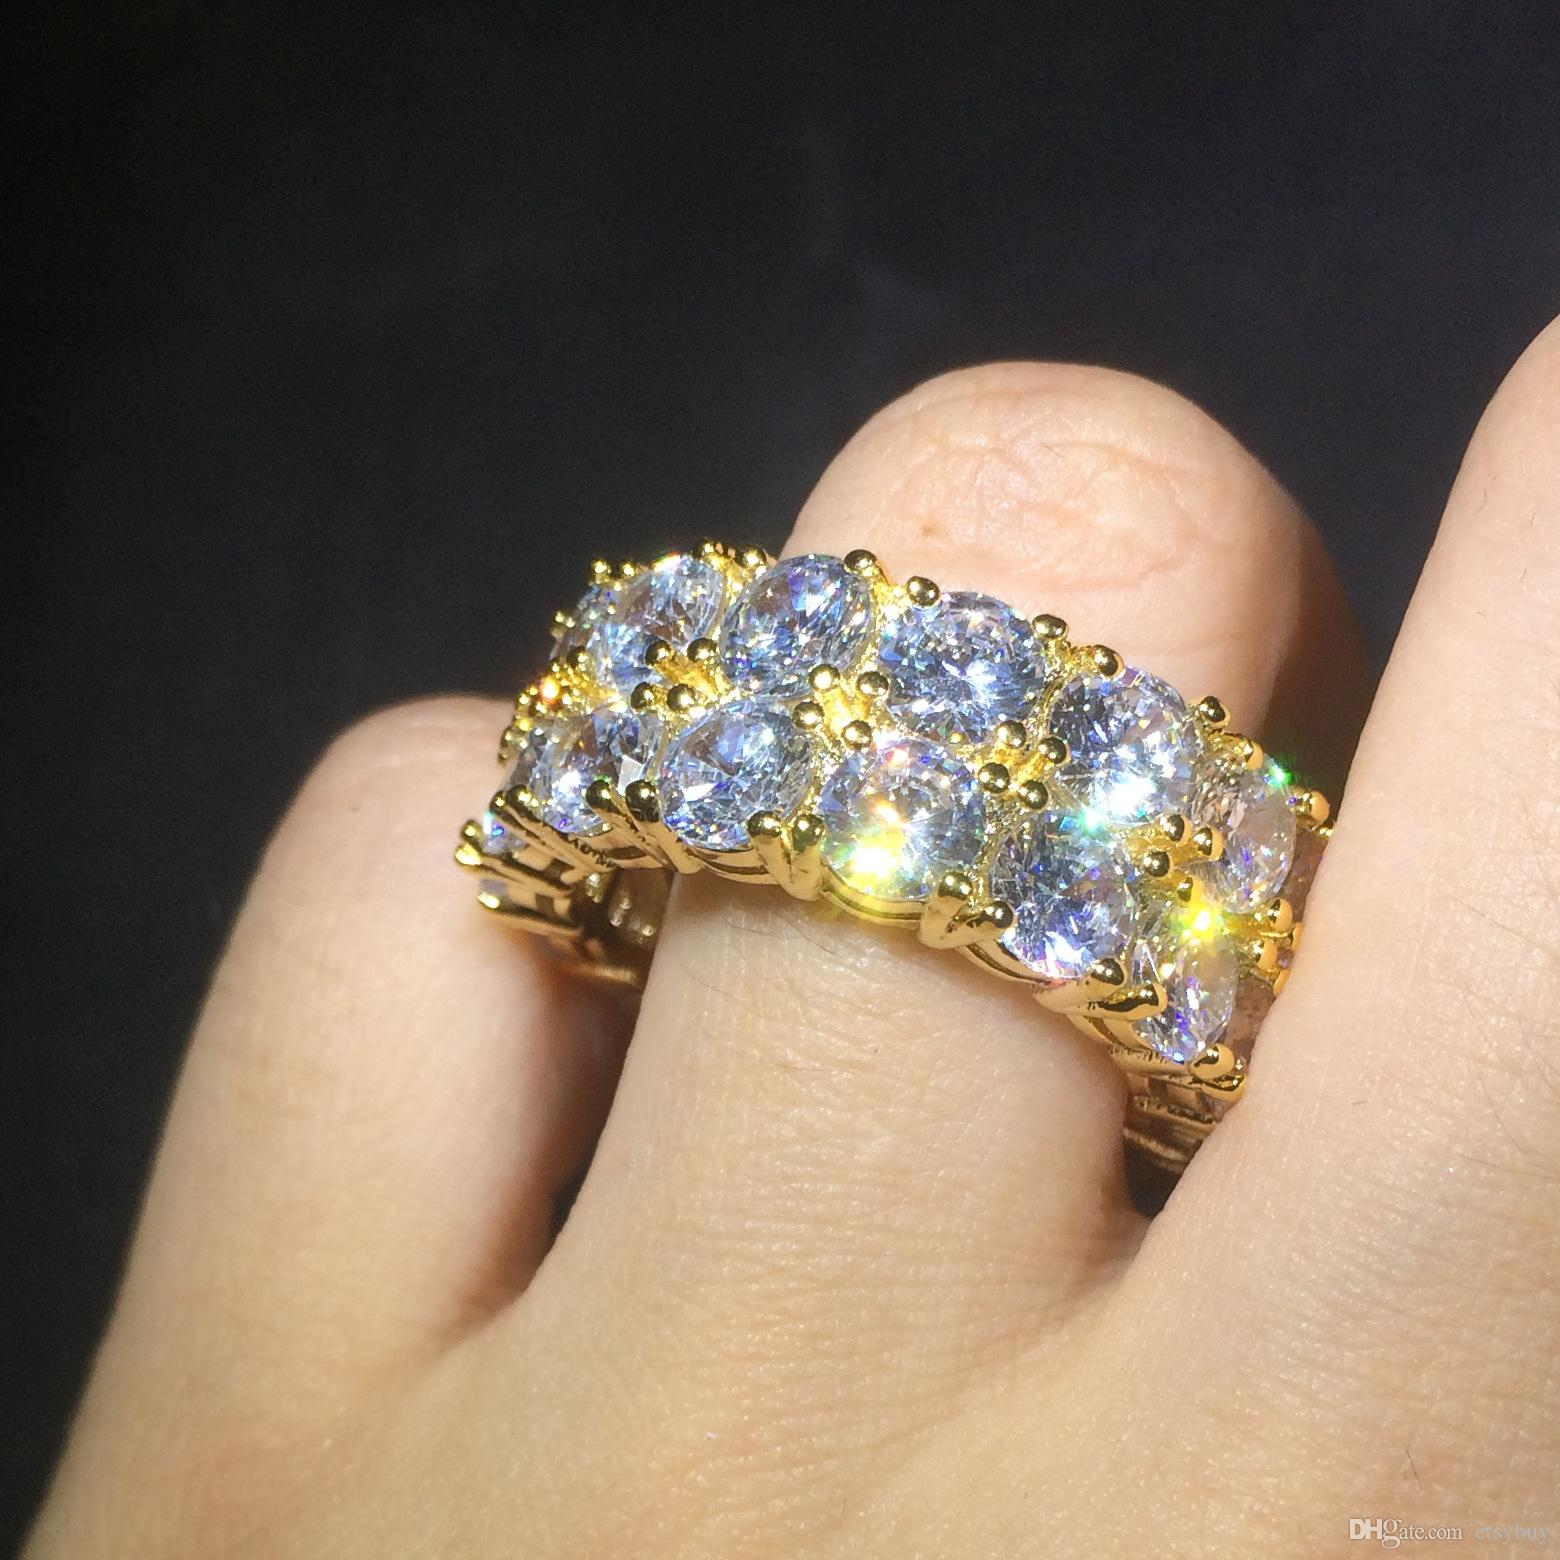 Mens Hip Hop Ring Double Row Iced Out CZ Bling Bling Tennis Ring Unisex Fashion Jewelry